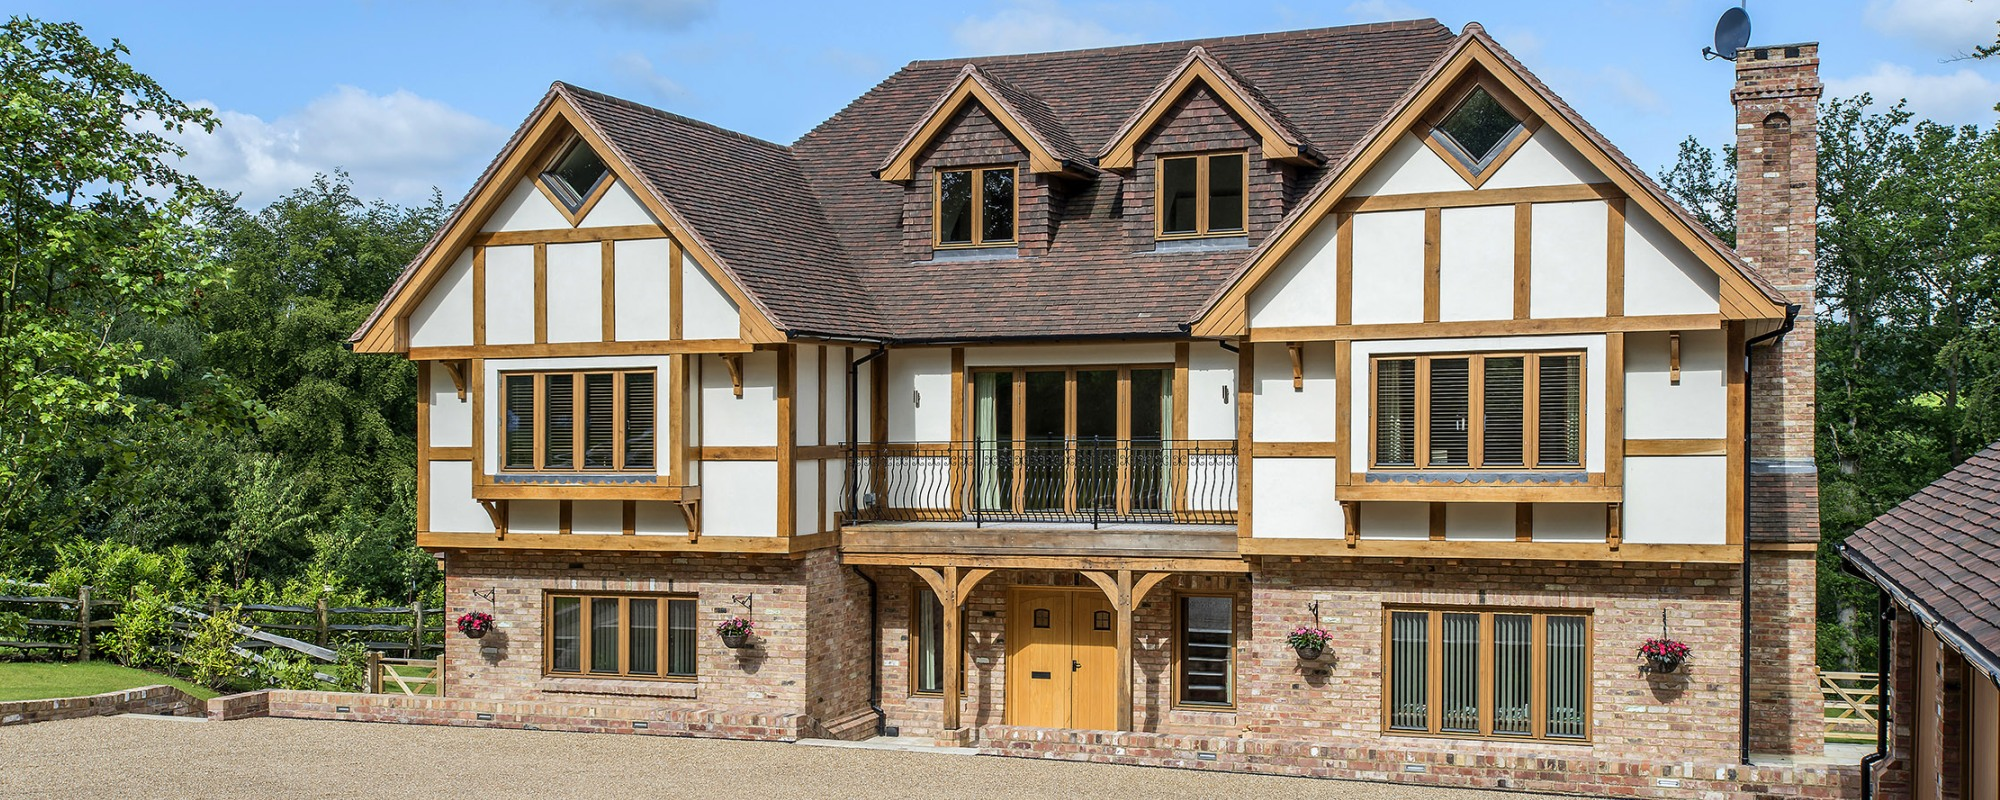 Wood Elevation Uk : Growth in the structural timber market